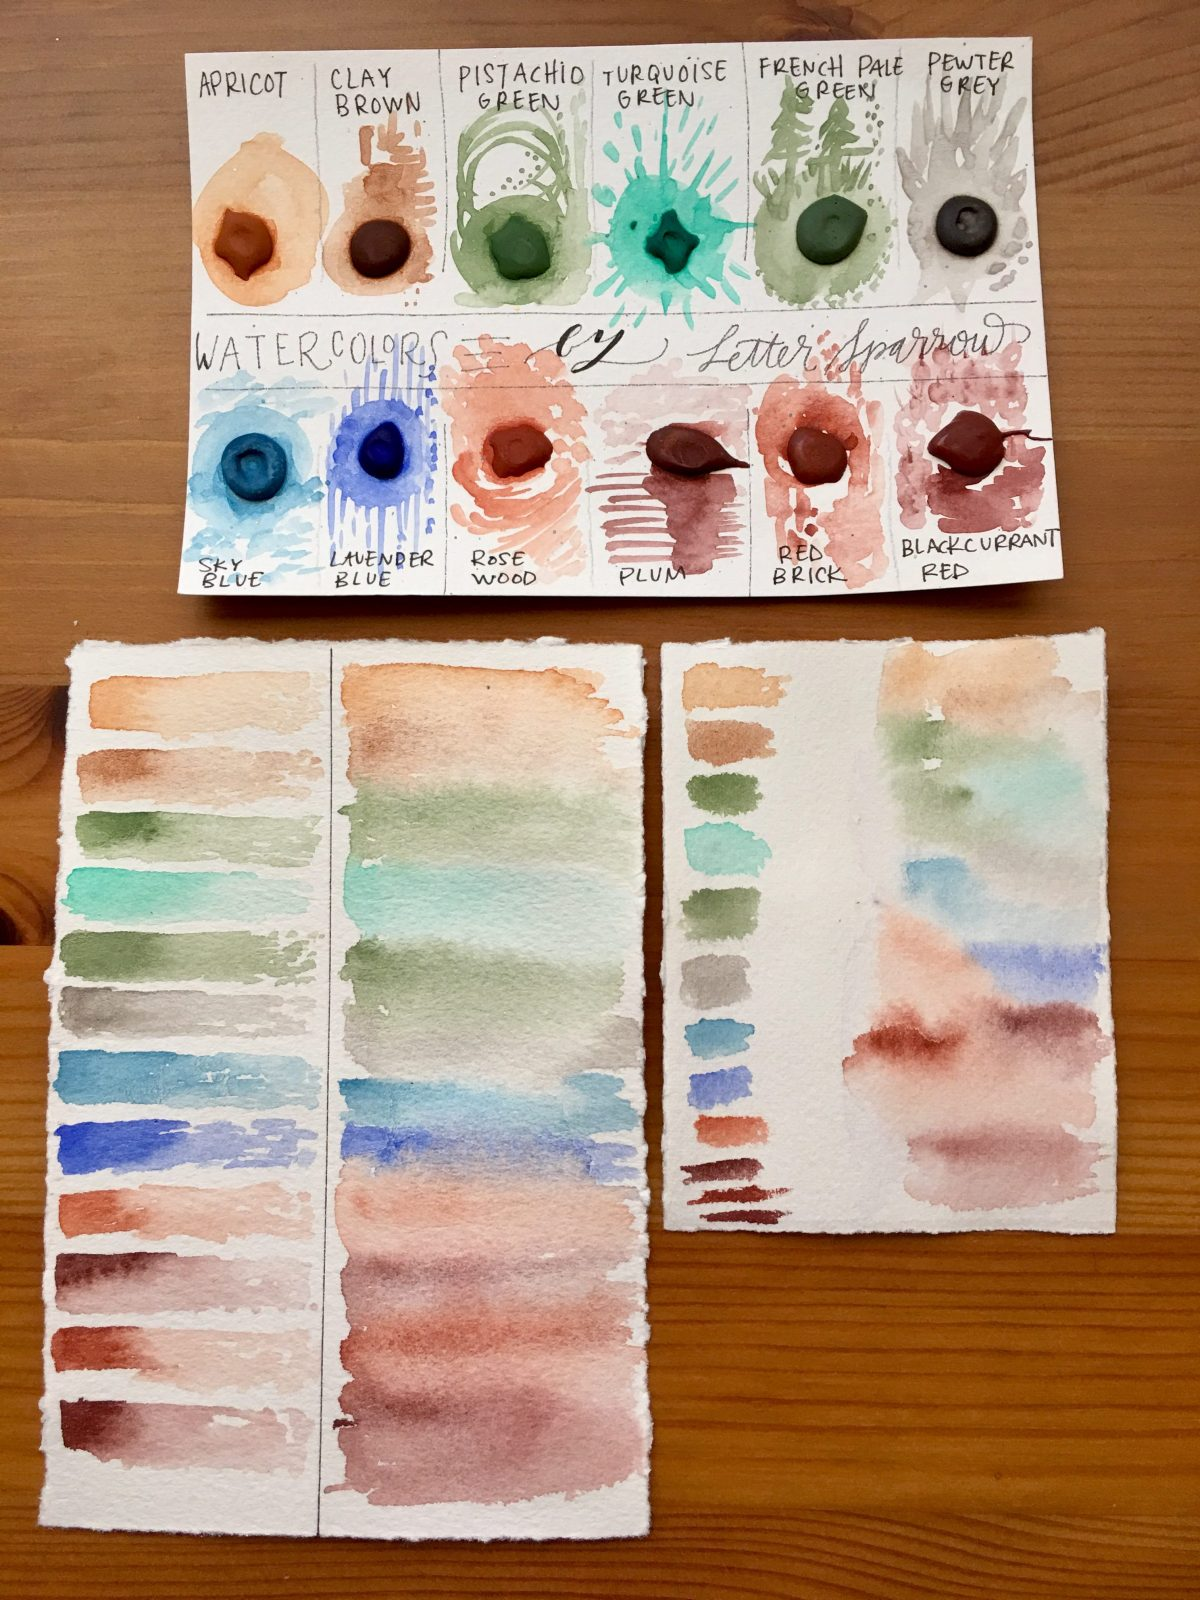 Handmade watercolors by Letter sparrow Summer Nights set and a French Mineral dot card, watercolor painting by jessica seacrest on yupo